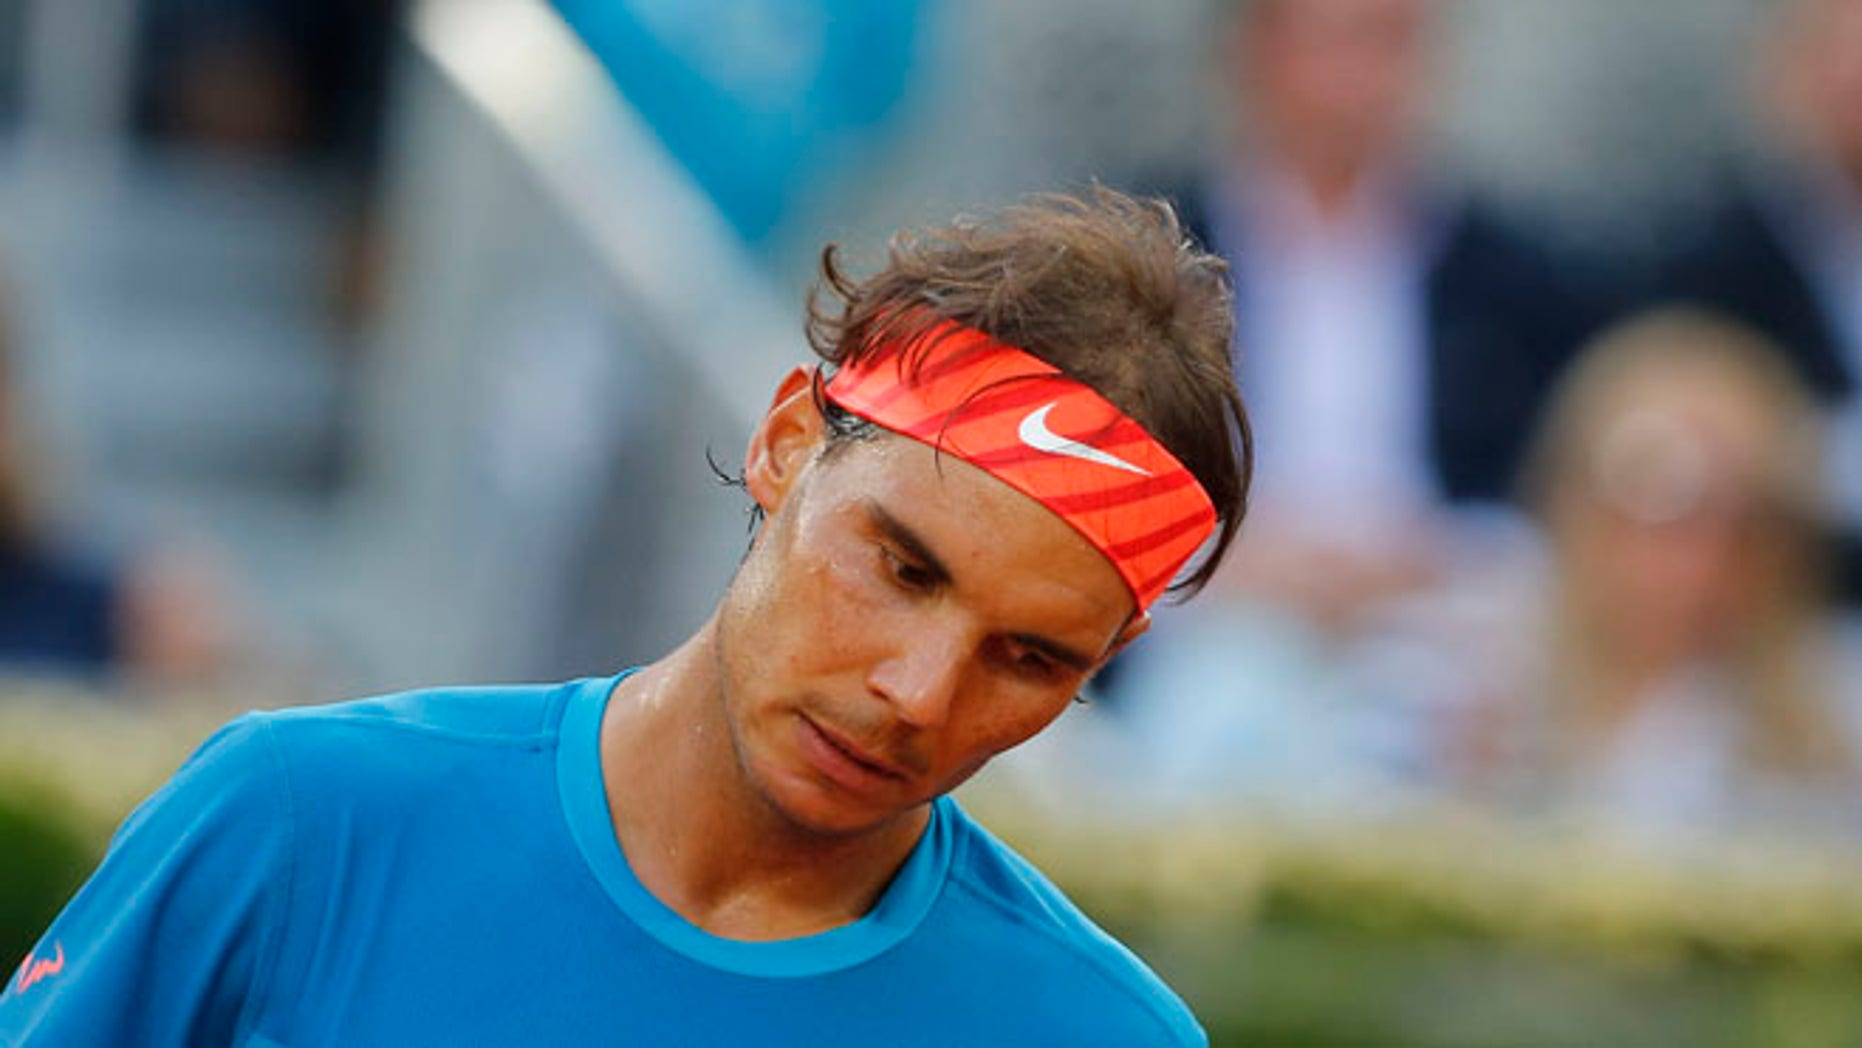 Rafael Nadal of Spain reacts during the men's singles final match against Andy Murray of Britain at the Madrid Open Tennis tournament in Madrid, Spain, Sunday, May 10, 2015. (AP Photo/Paul White)